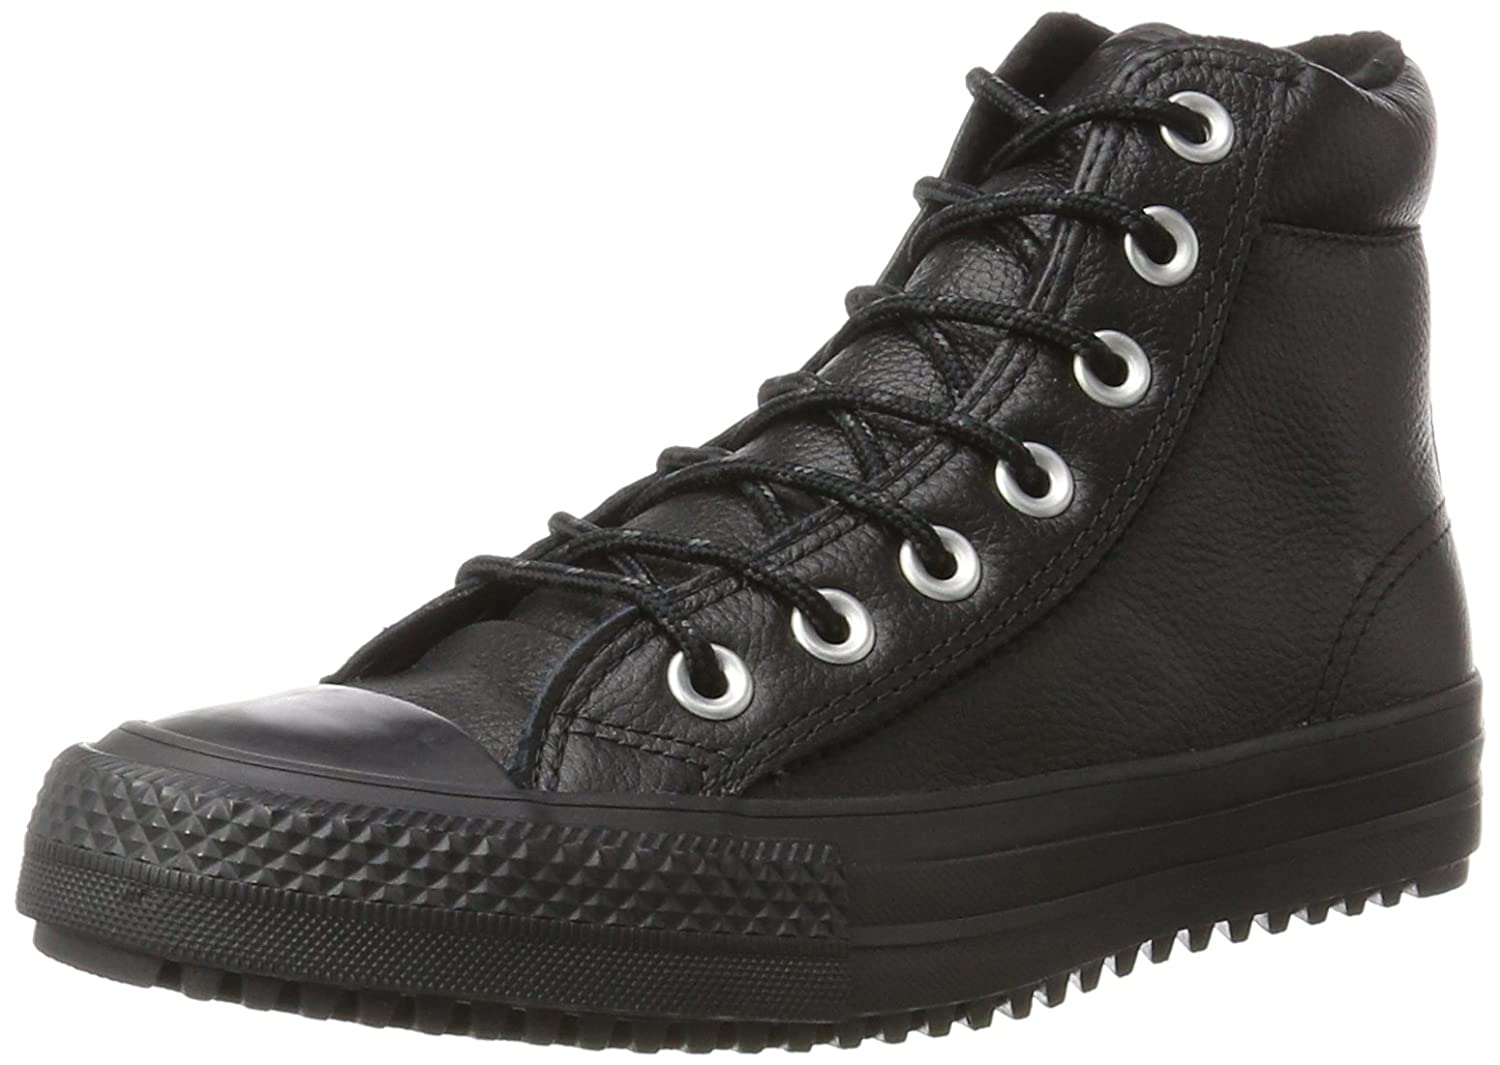 0a73170c424d Amazon.com  Converse Men s CT All Star Leather Boots